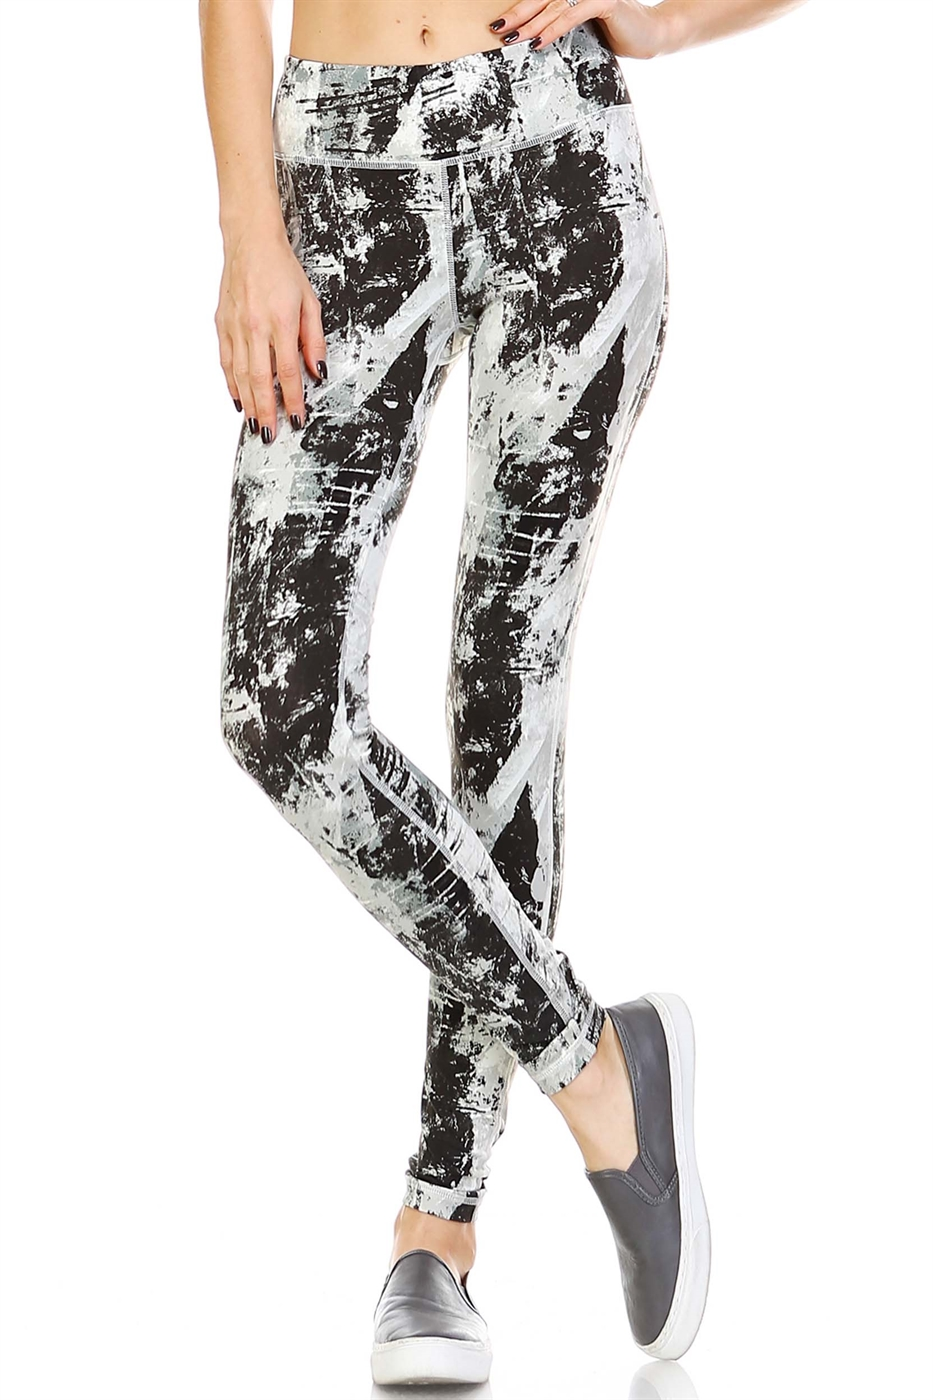 SPLATTER PRINT LEGGINGS - orangeshine.com